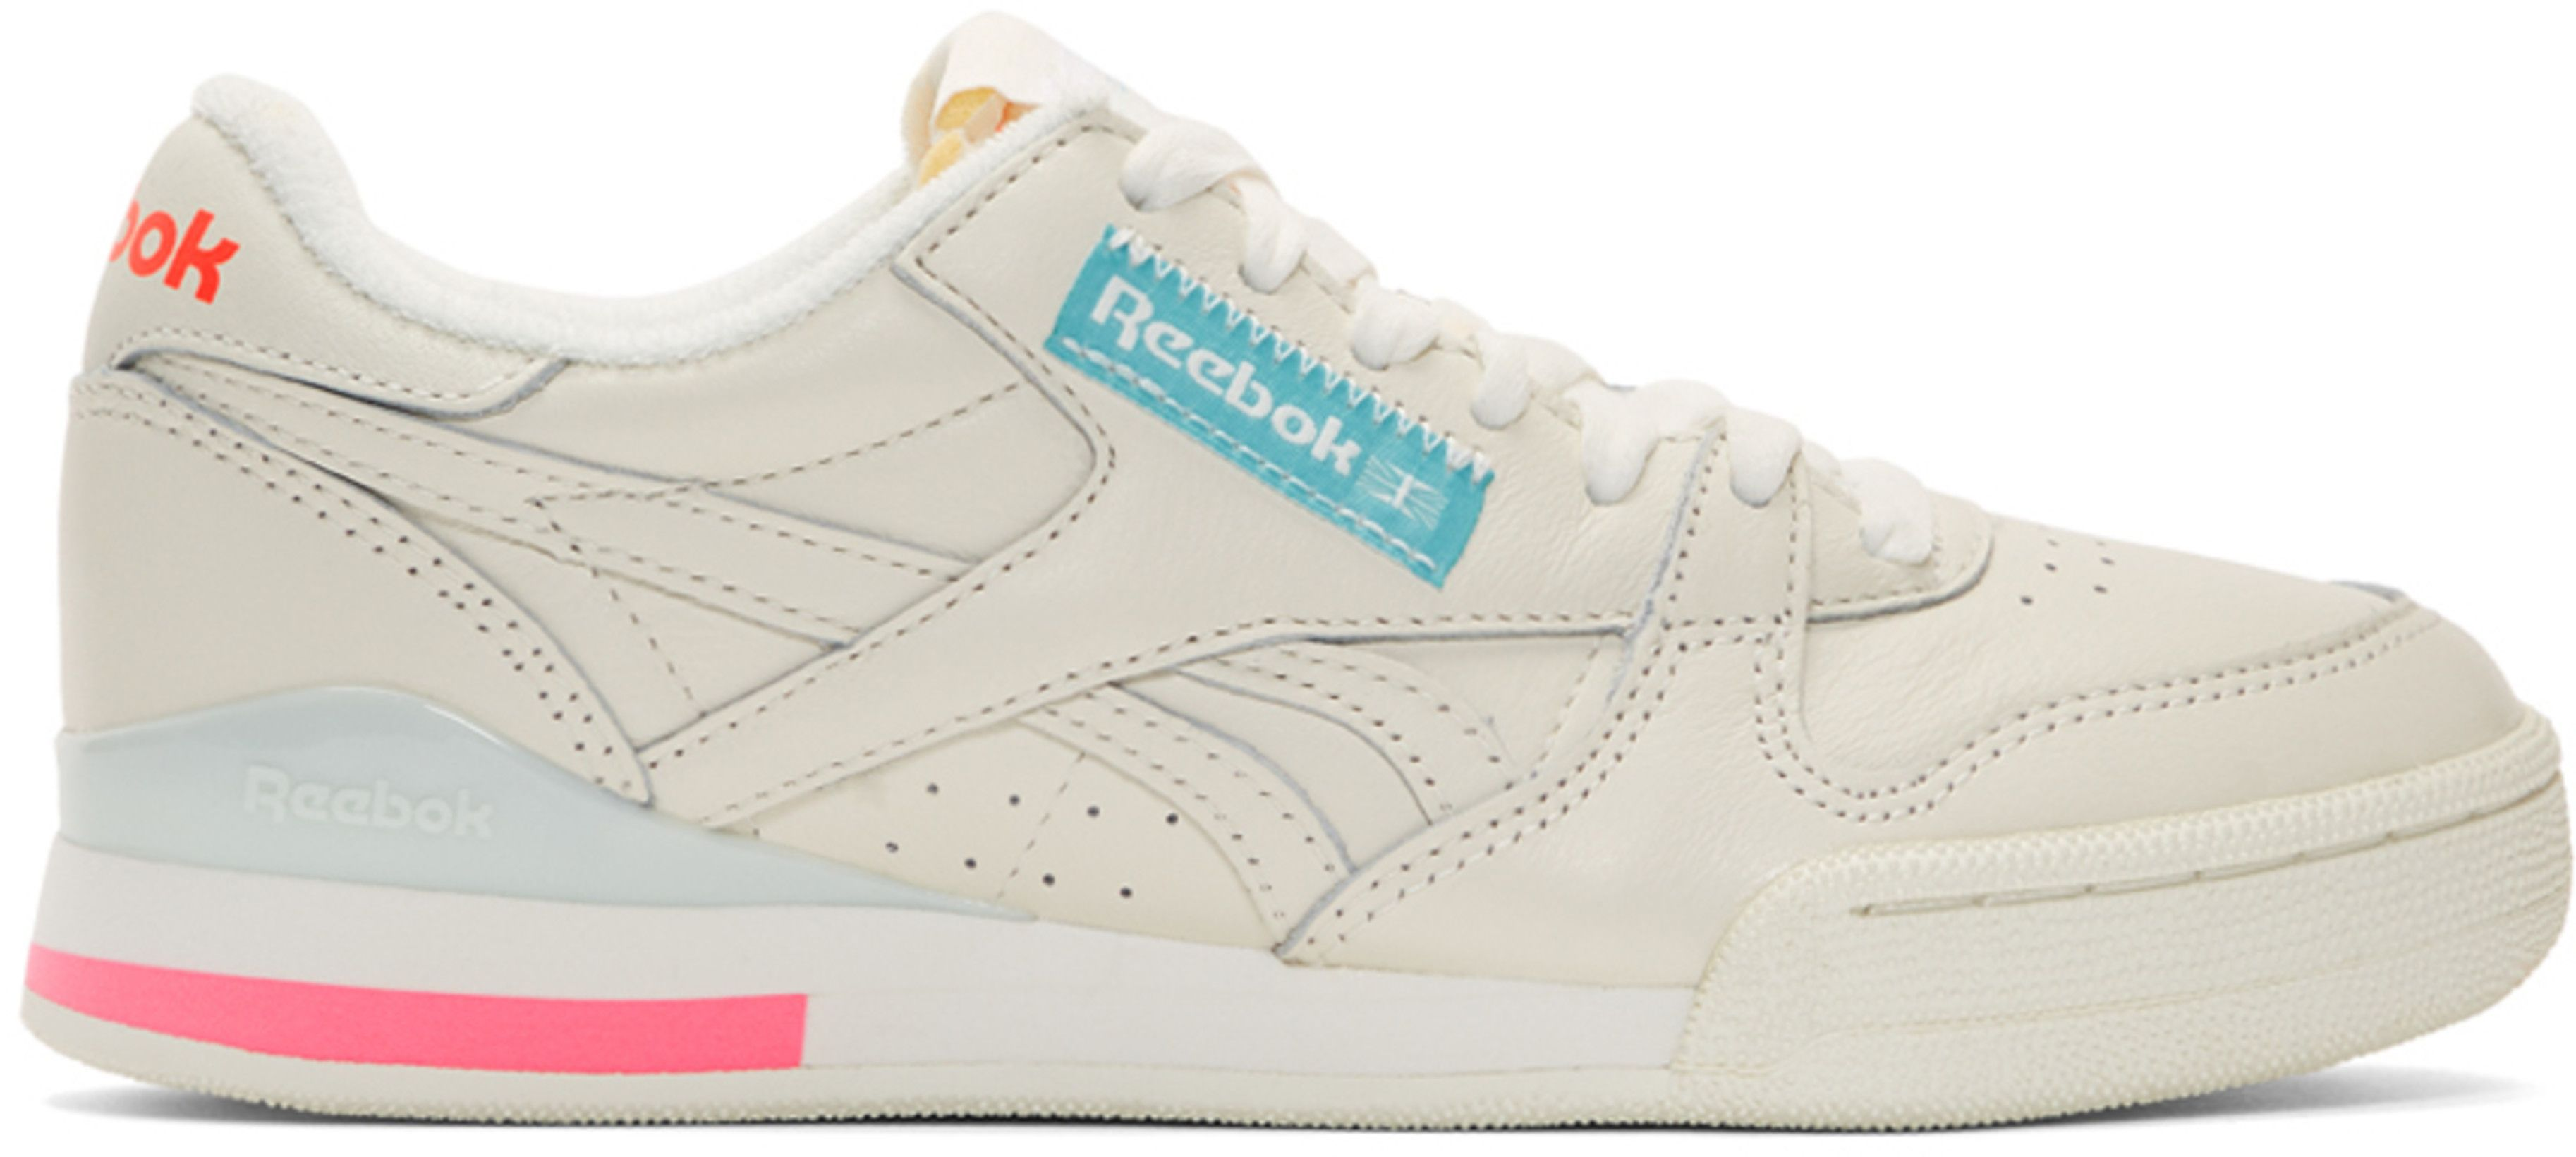 Off White Reebok Classics and Pink Phase 1 Pro Sneakers